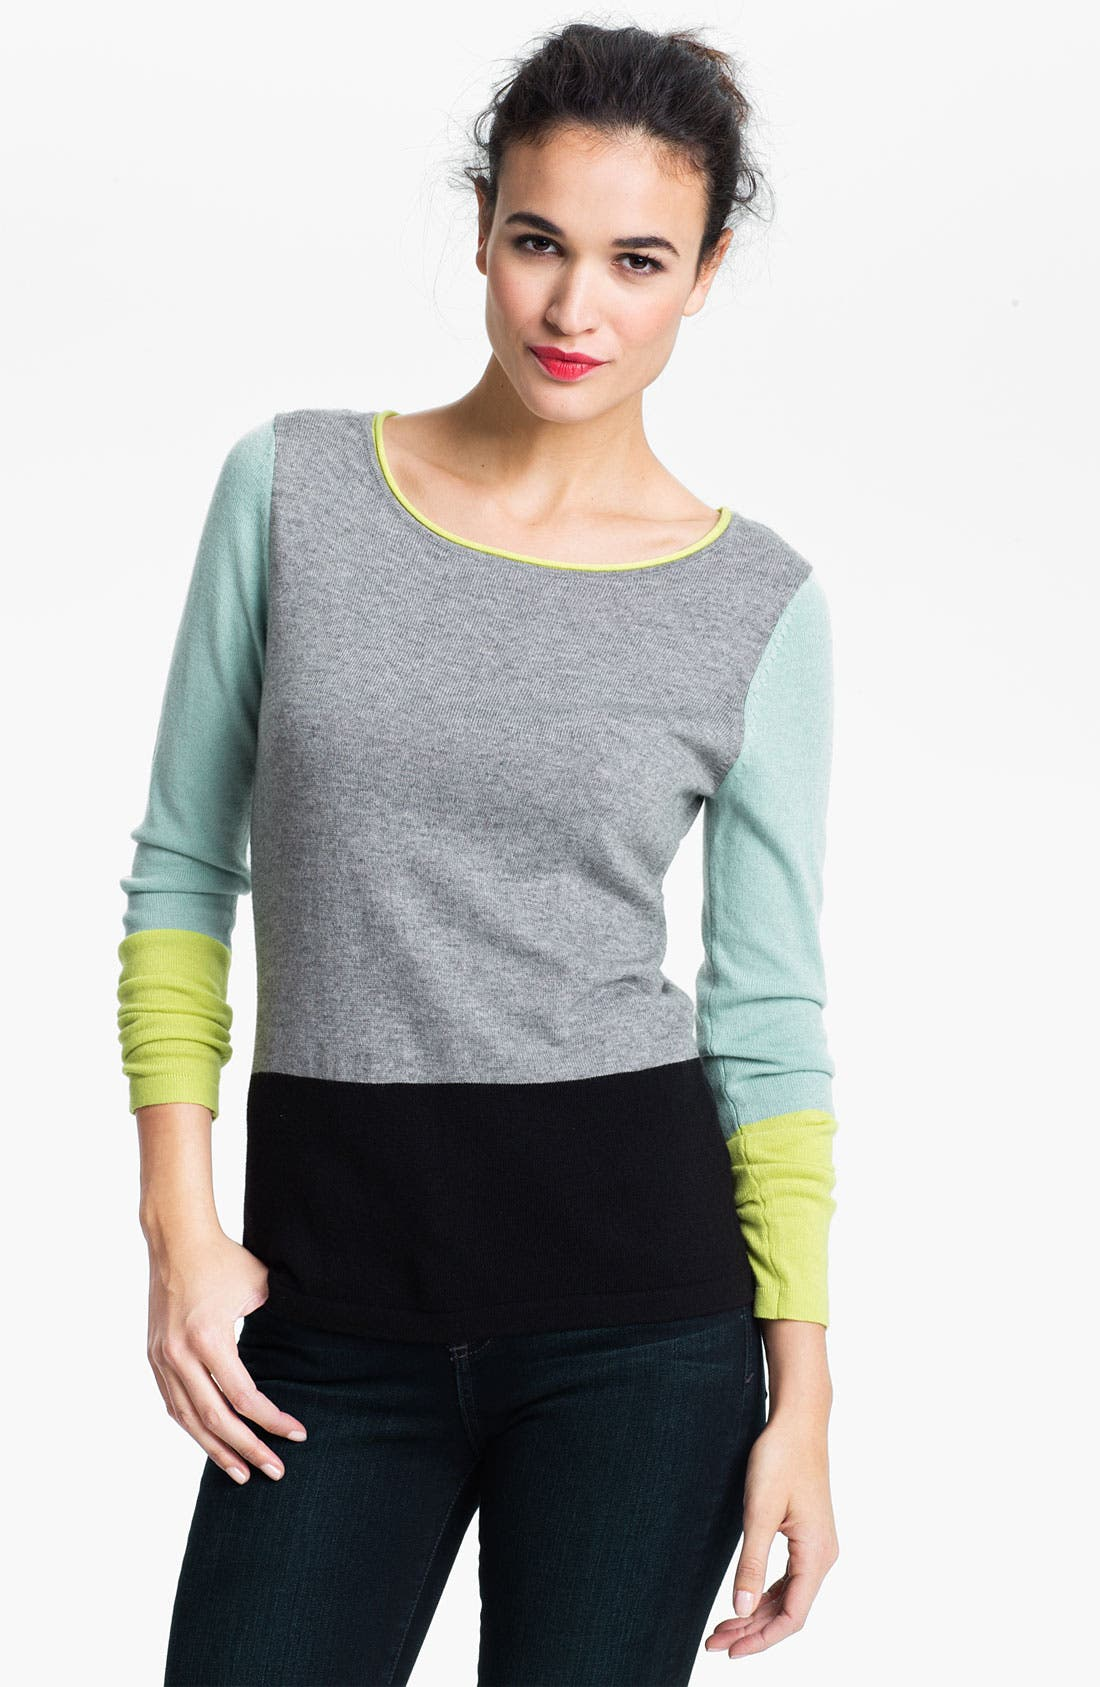 Alternate Image 1 Selected - Vince Camuto Colorblock Sweater